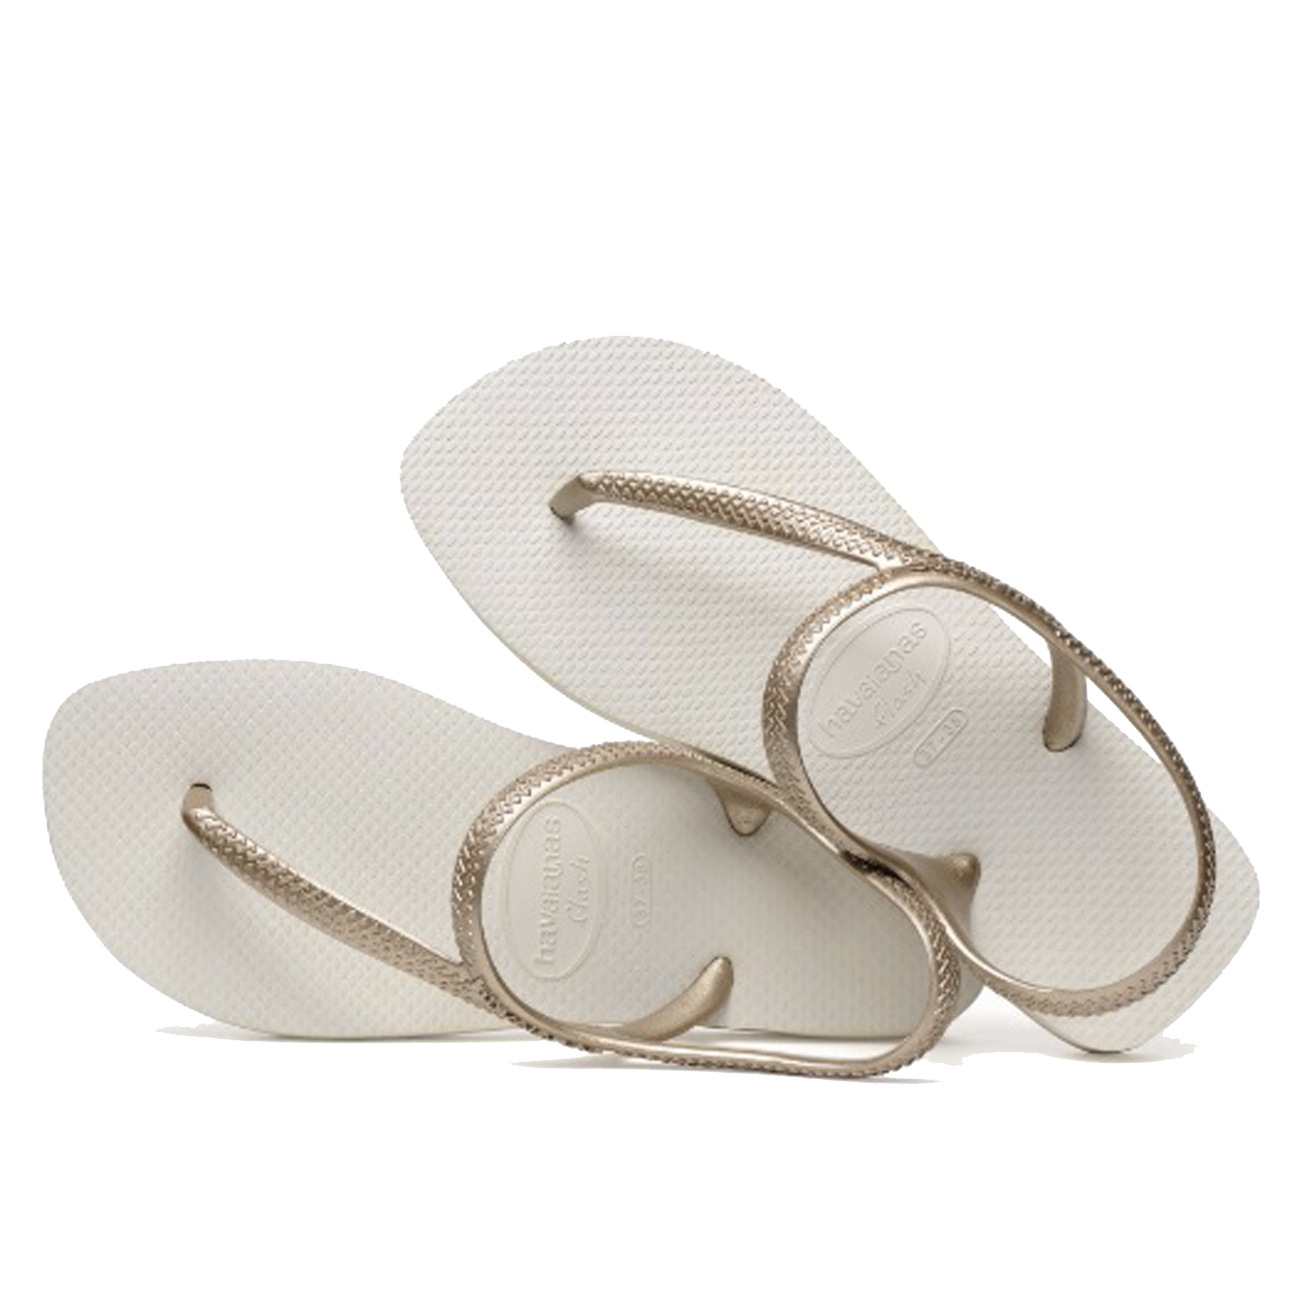 92ebca188a81 Ladies Havaianas Flash Urban Ankle Strap Holiday Toe Post Flip Flops All  Sizes